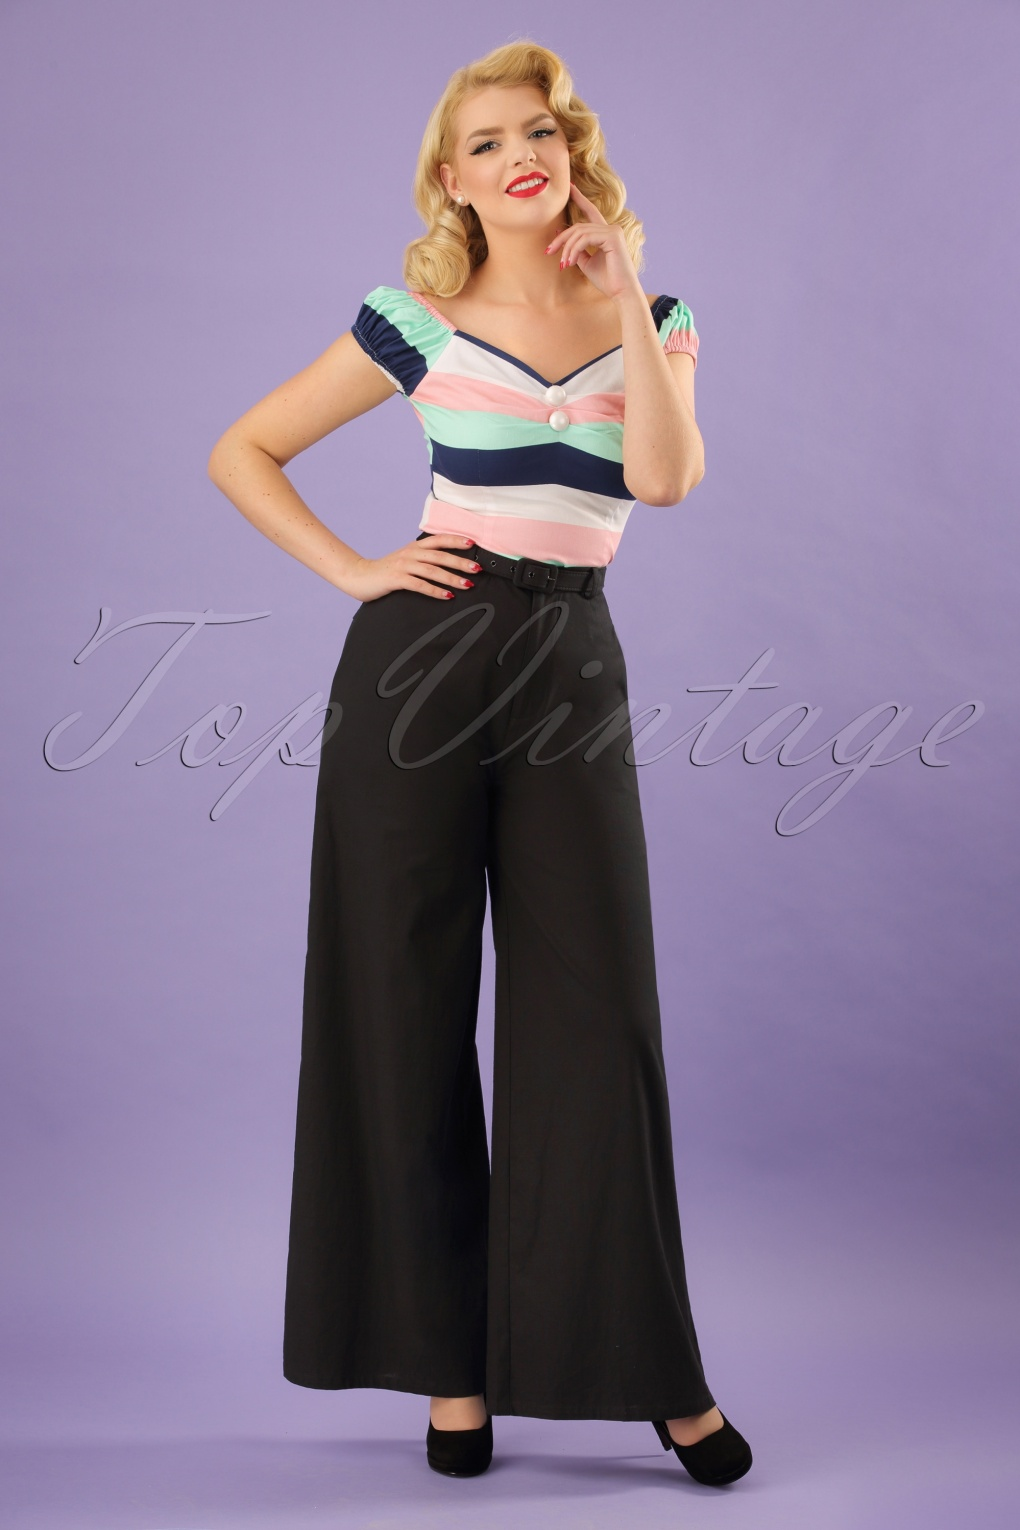 Vintage High Waisted Trousers, Sailor Pants, Jeans 40s Vicky Trousers in Black £52.91 AT vintagedancer.com